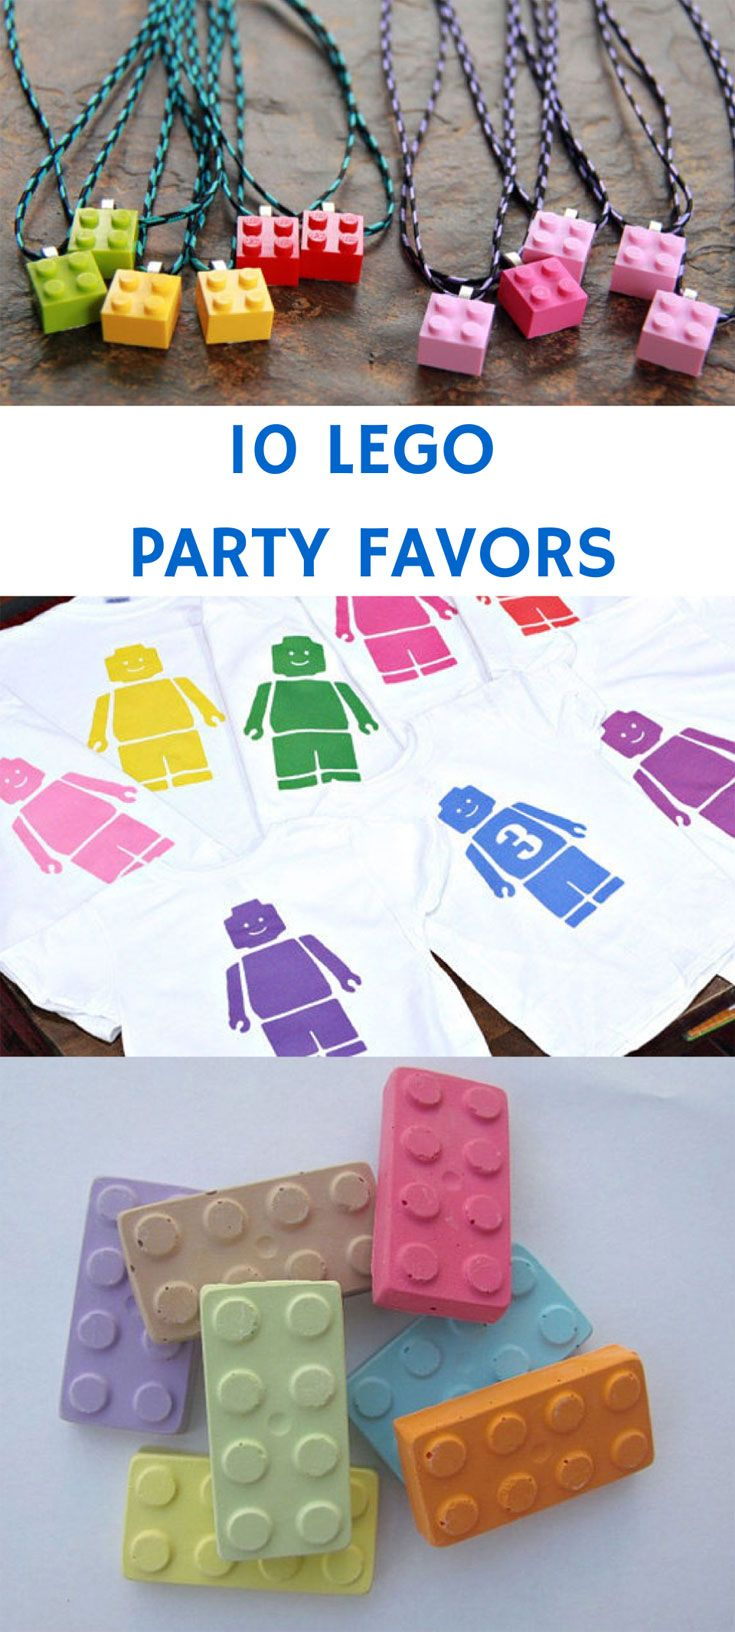 10 PARTY FAVOR IDEAS FOR KIDS LEGO PARTY ... Ry's party someday??